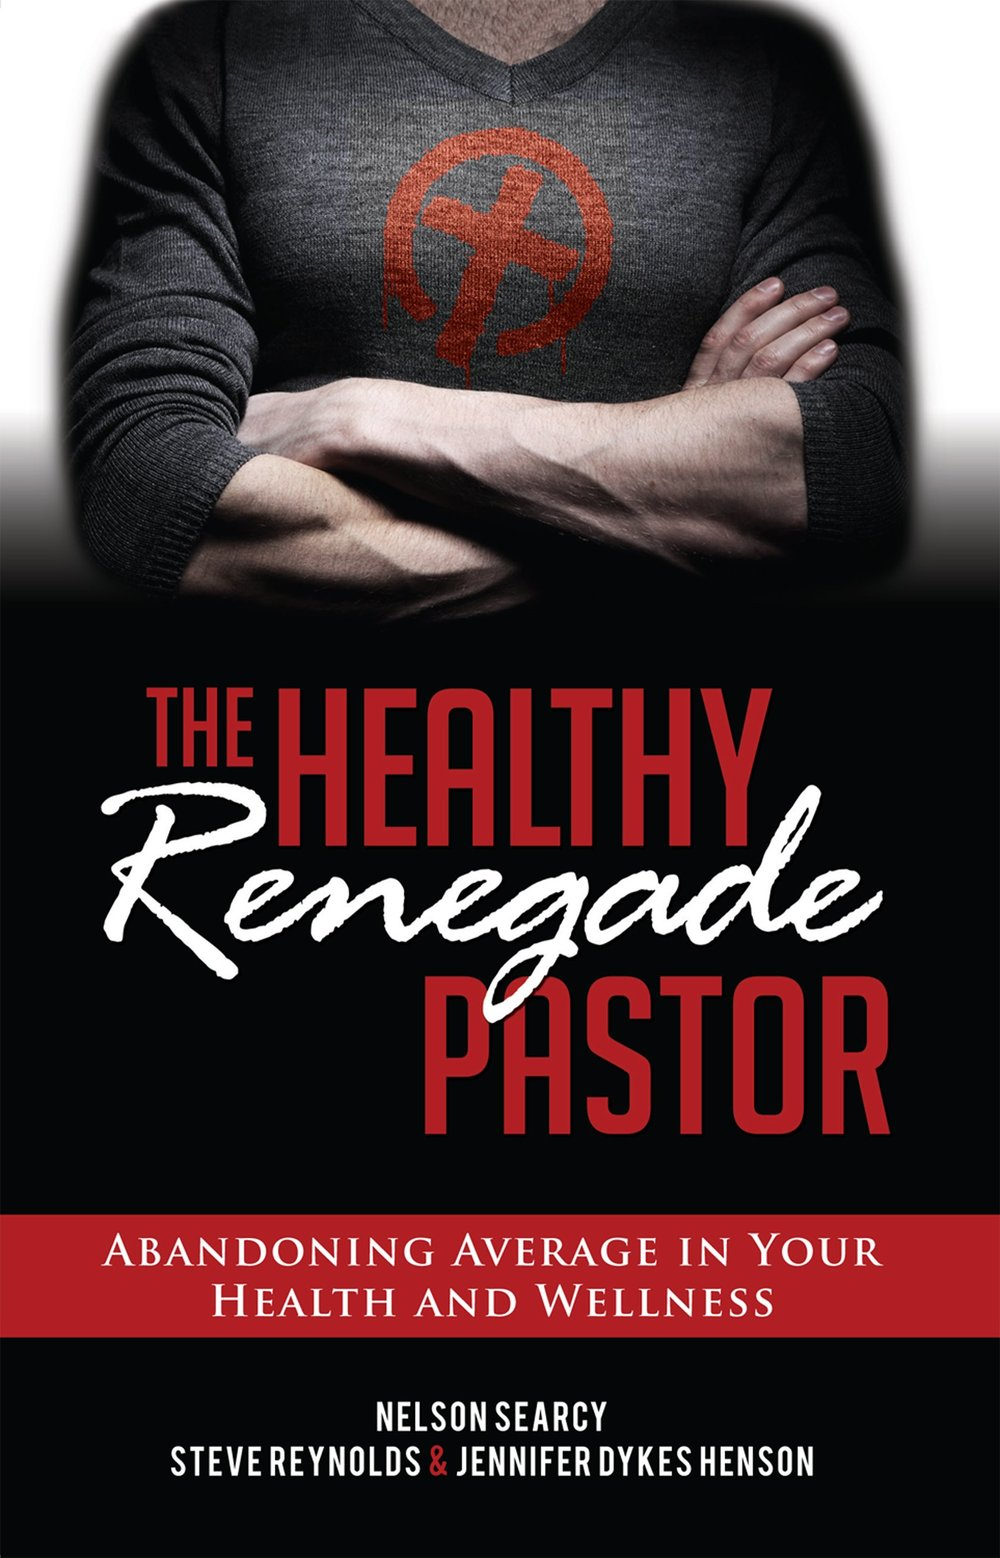 The Healthy Renegade Pastor - by Steve Reynolds